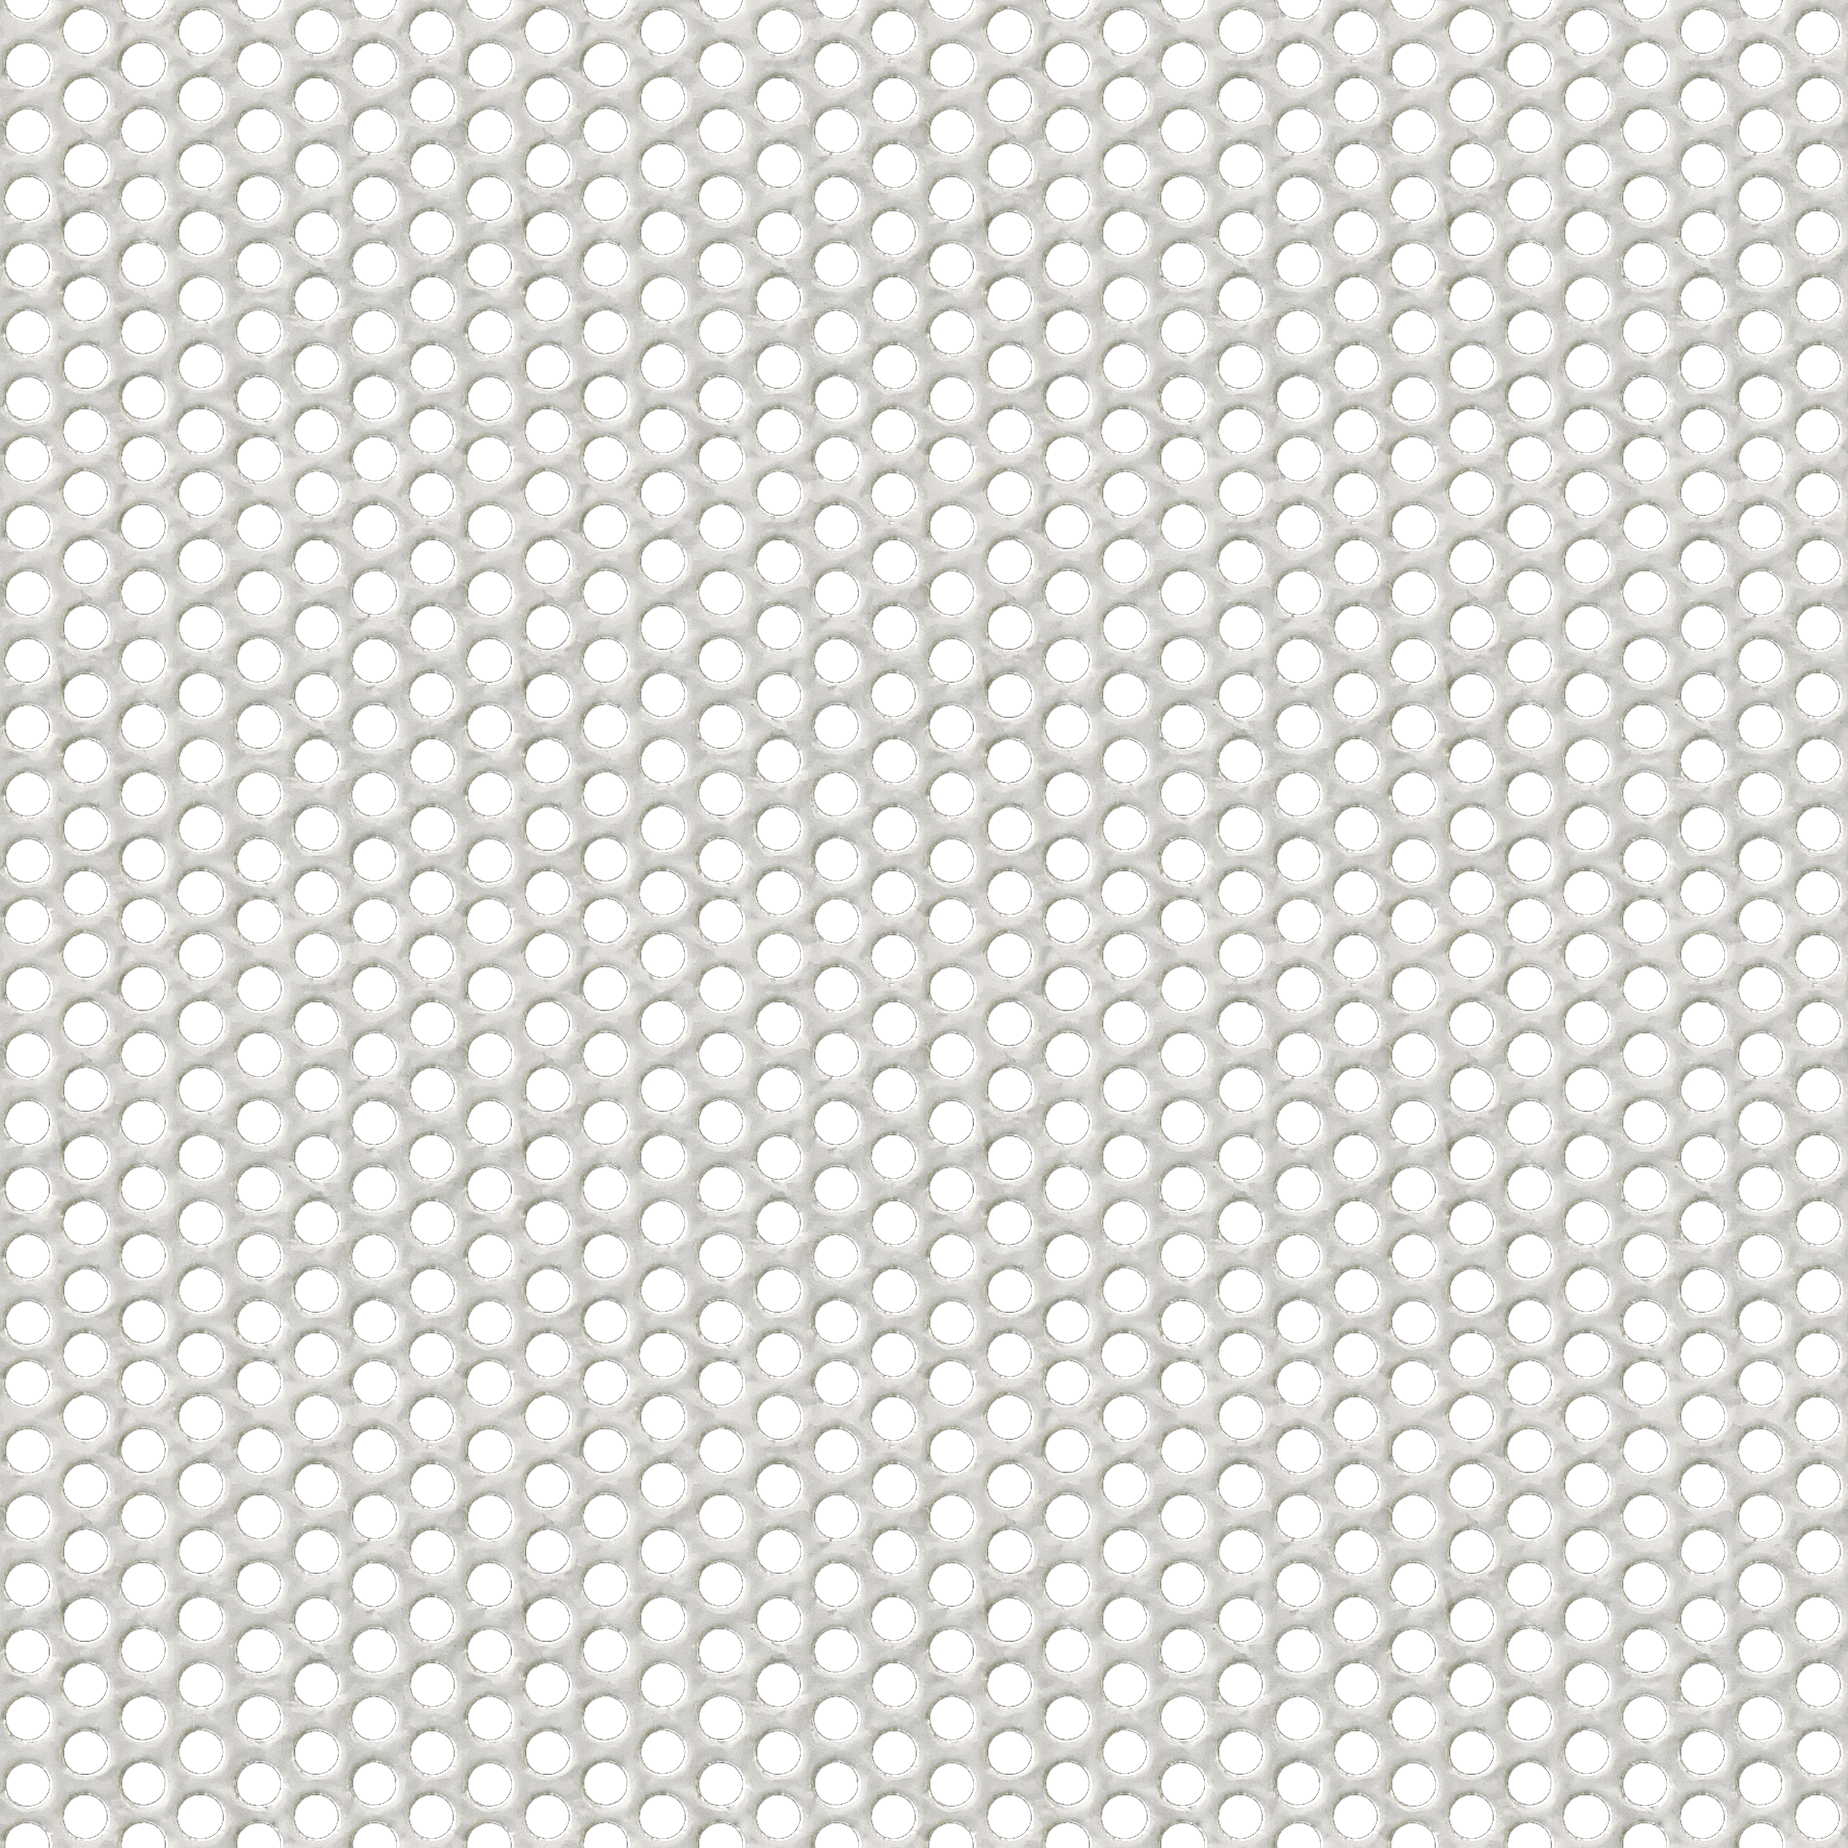 Fabric vector texture. Free perforated metal sheet